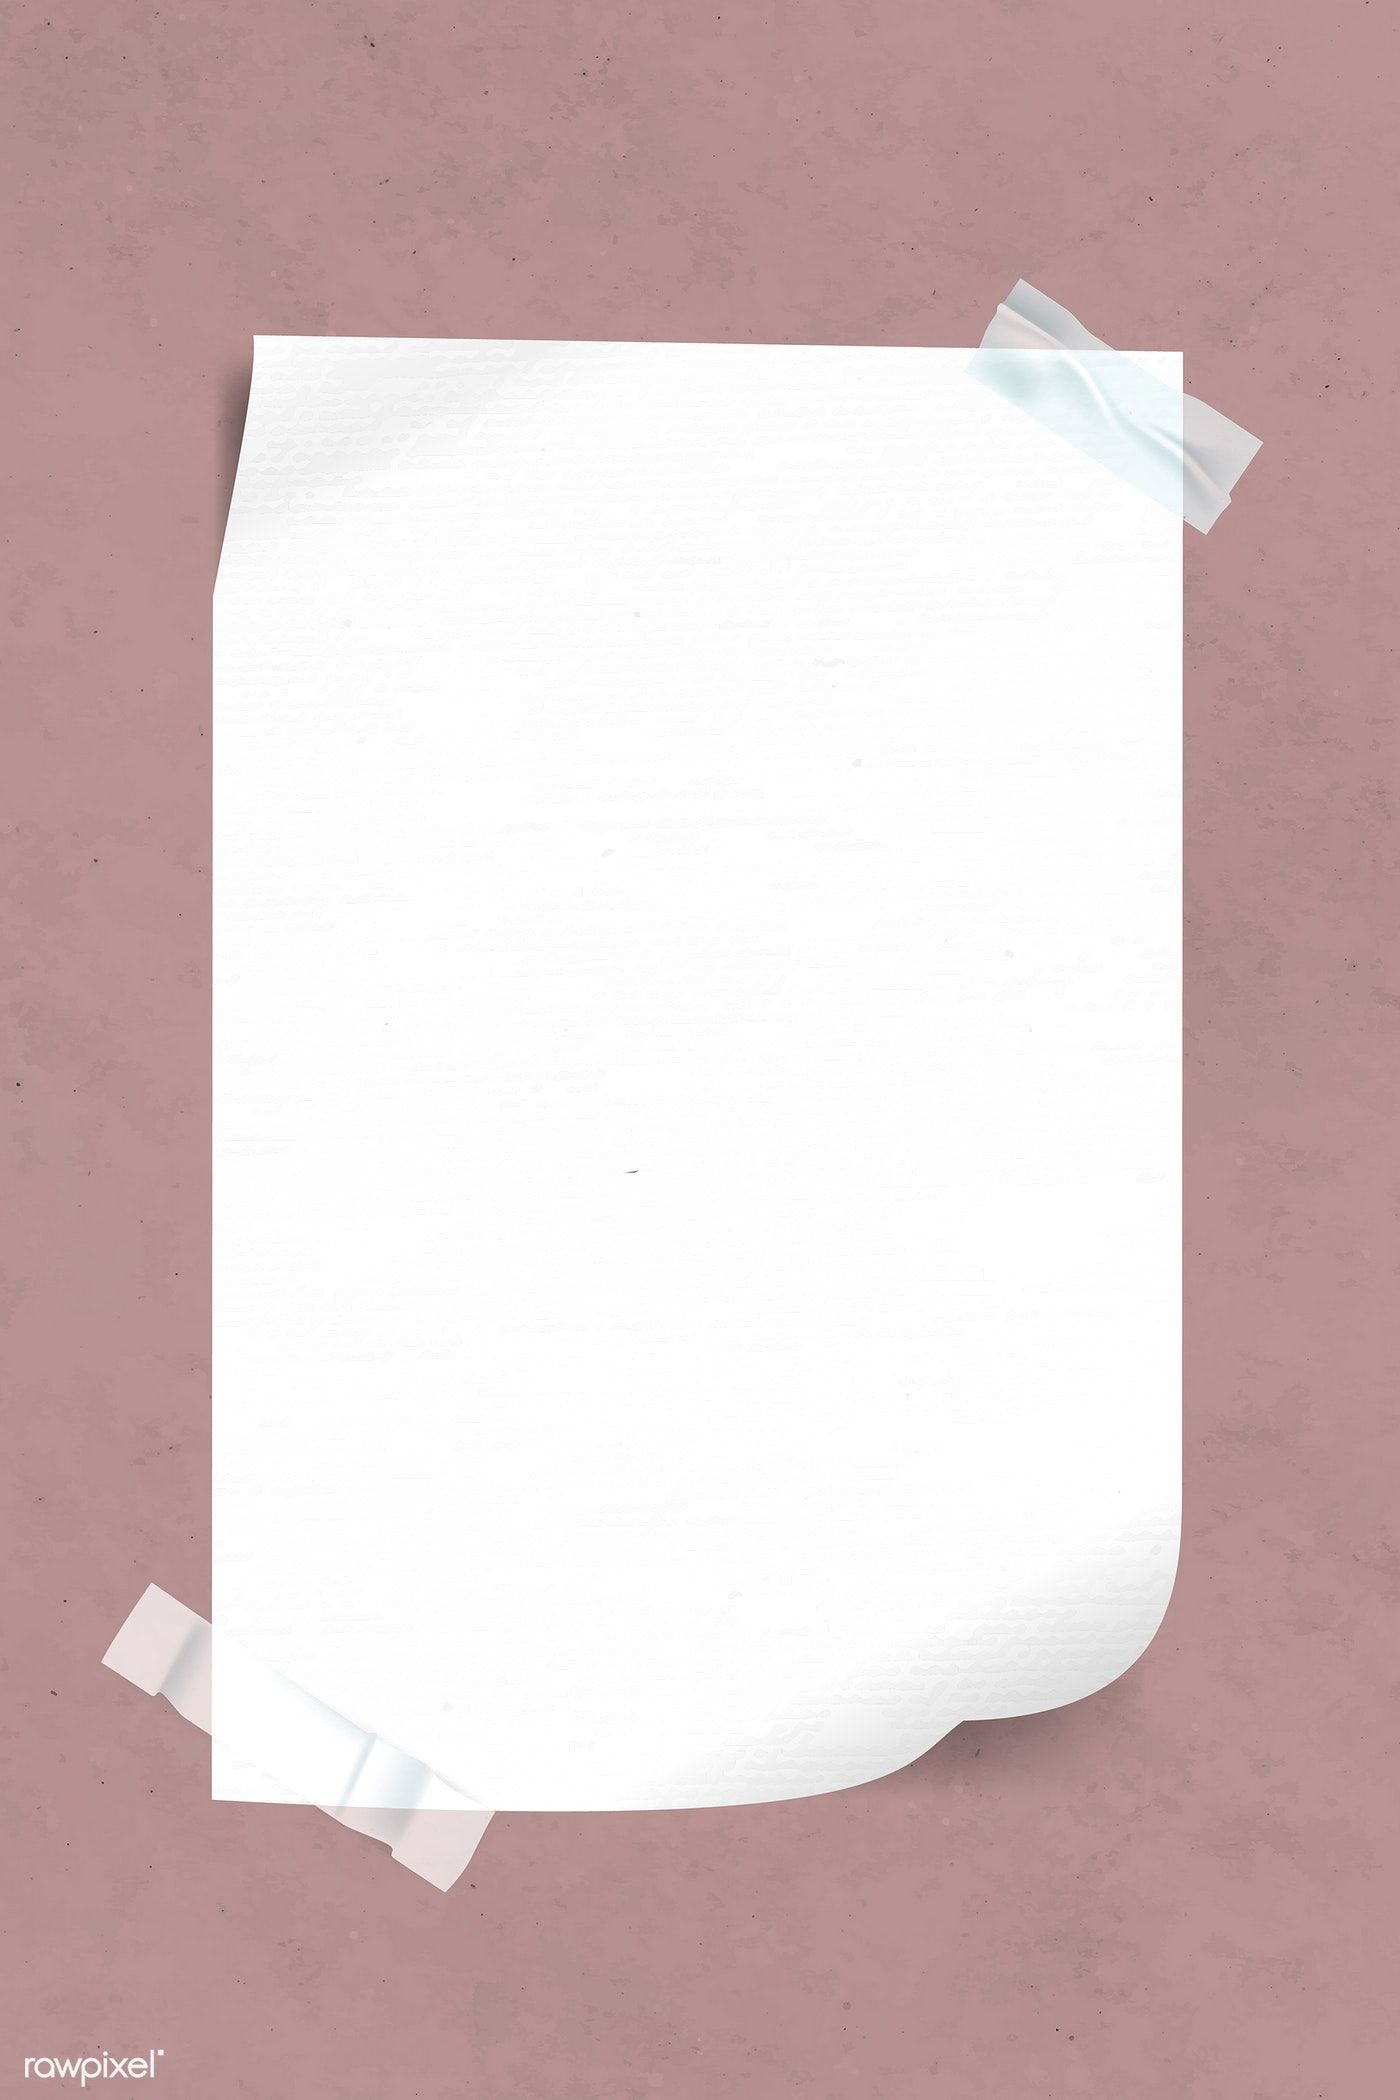 Download Premium Vector Of Blank White Paper Taped On Pink Background Pink Background Paper Tape Photo Collage Template